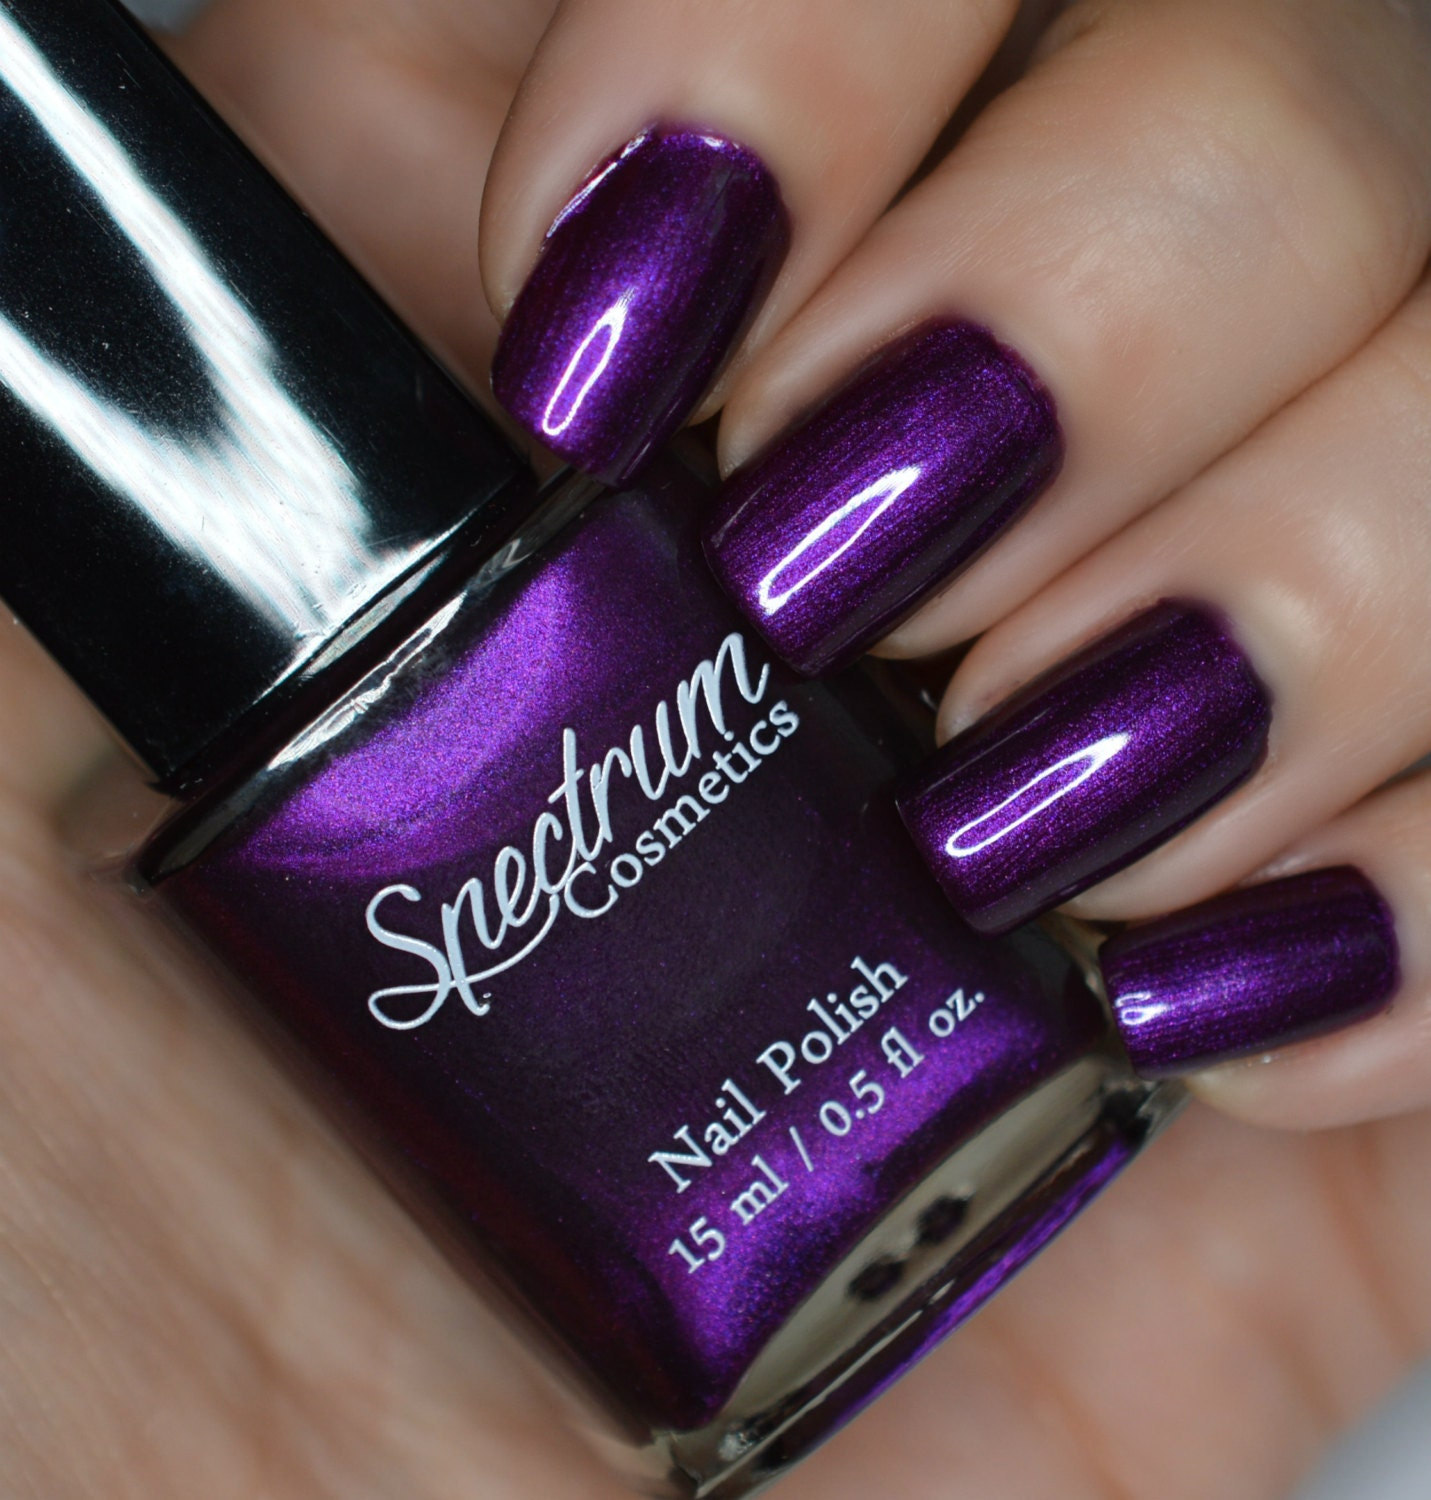 Nail Colors Halloween: Purple Nail Polish MISCHIEF AND MAYHEM Halloween Shade